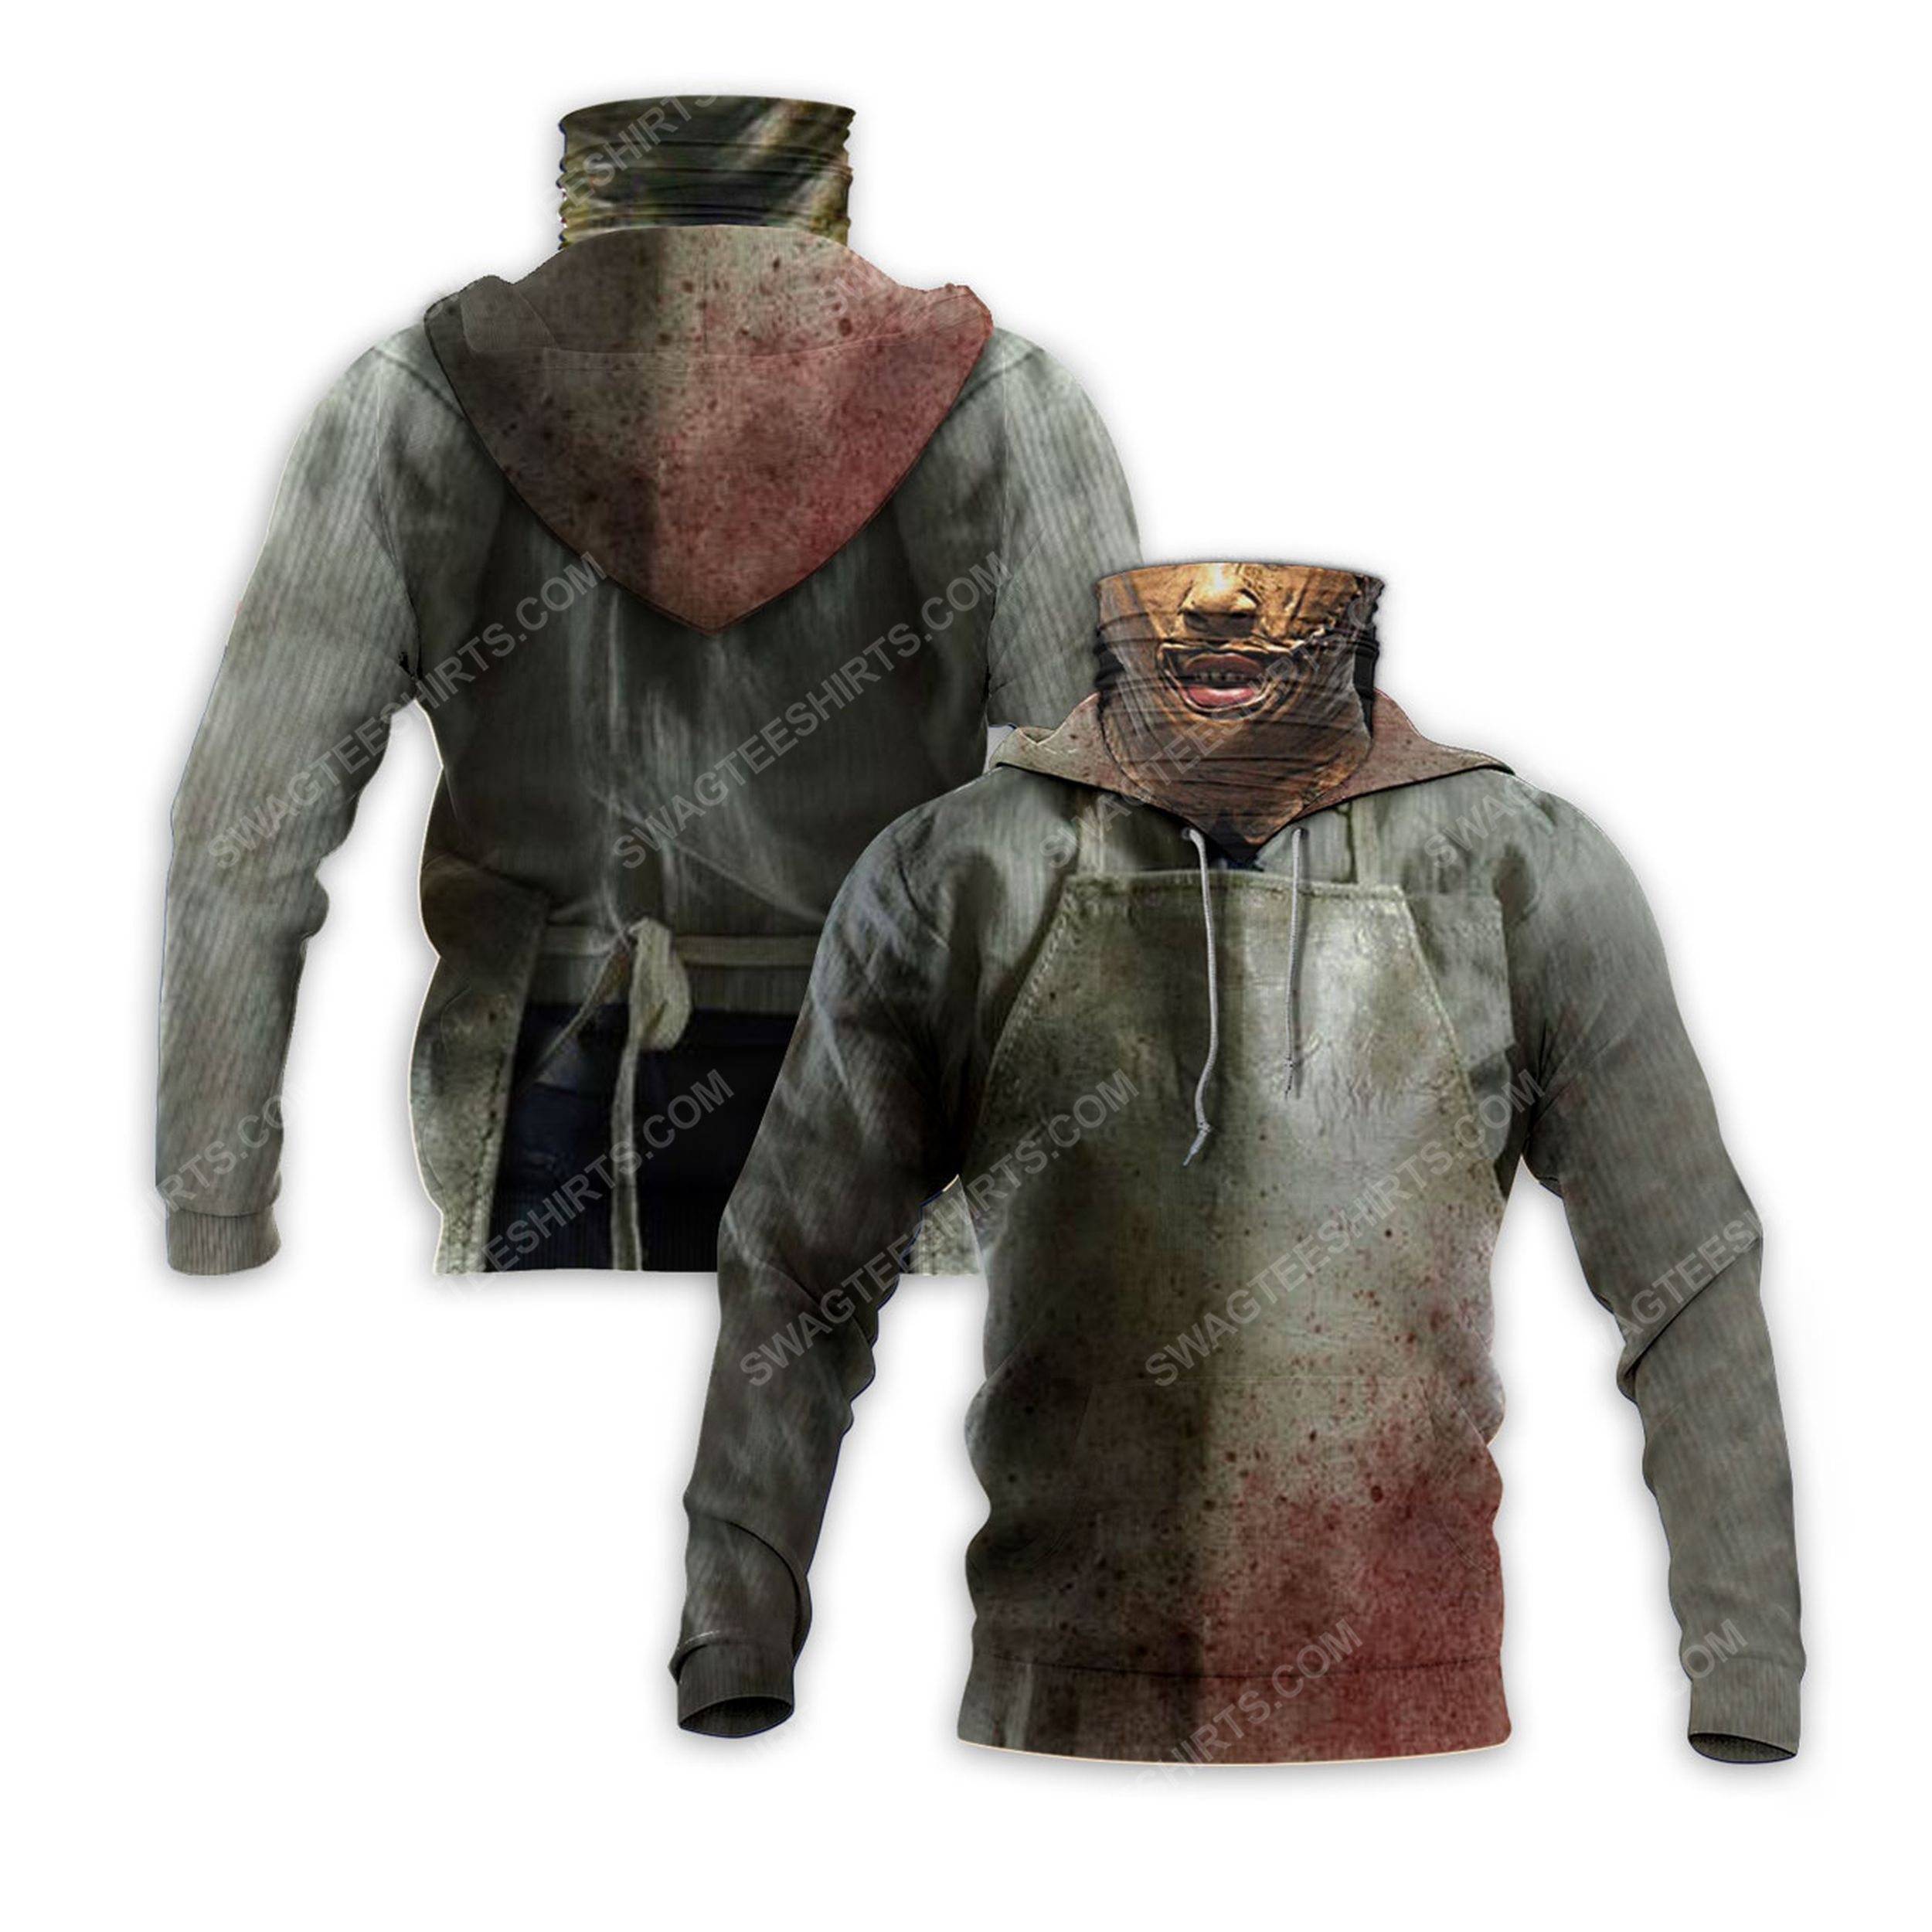 Horror movie leatherface for halloween full print mask hoodie 2(1) - Copy